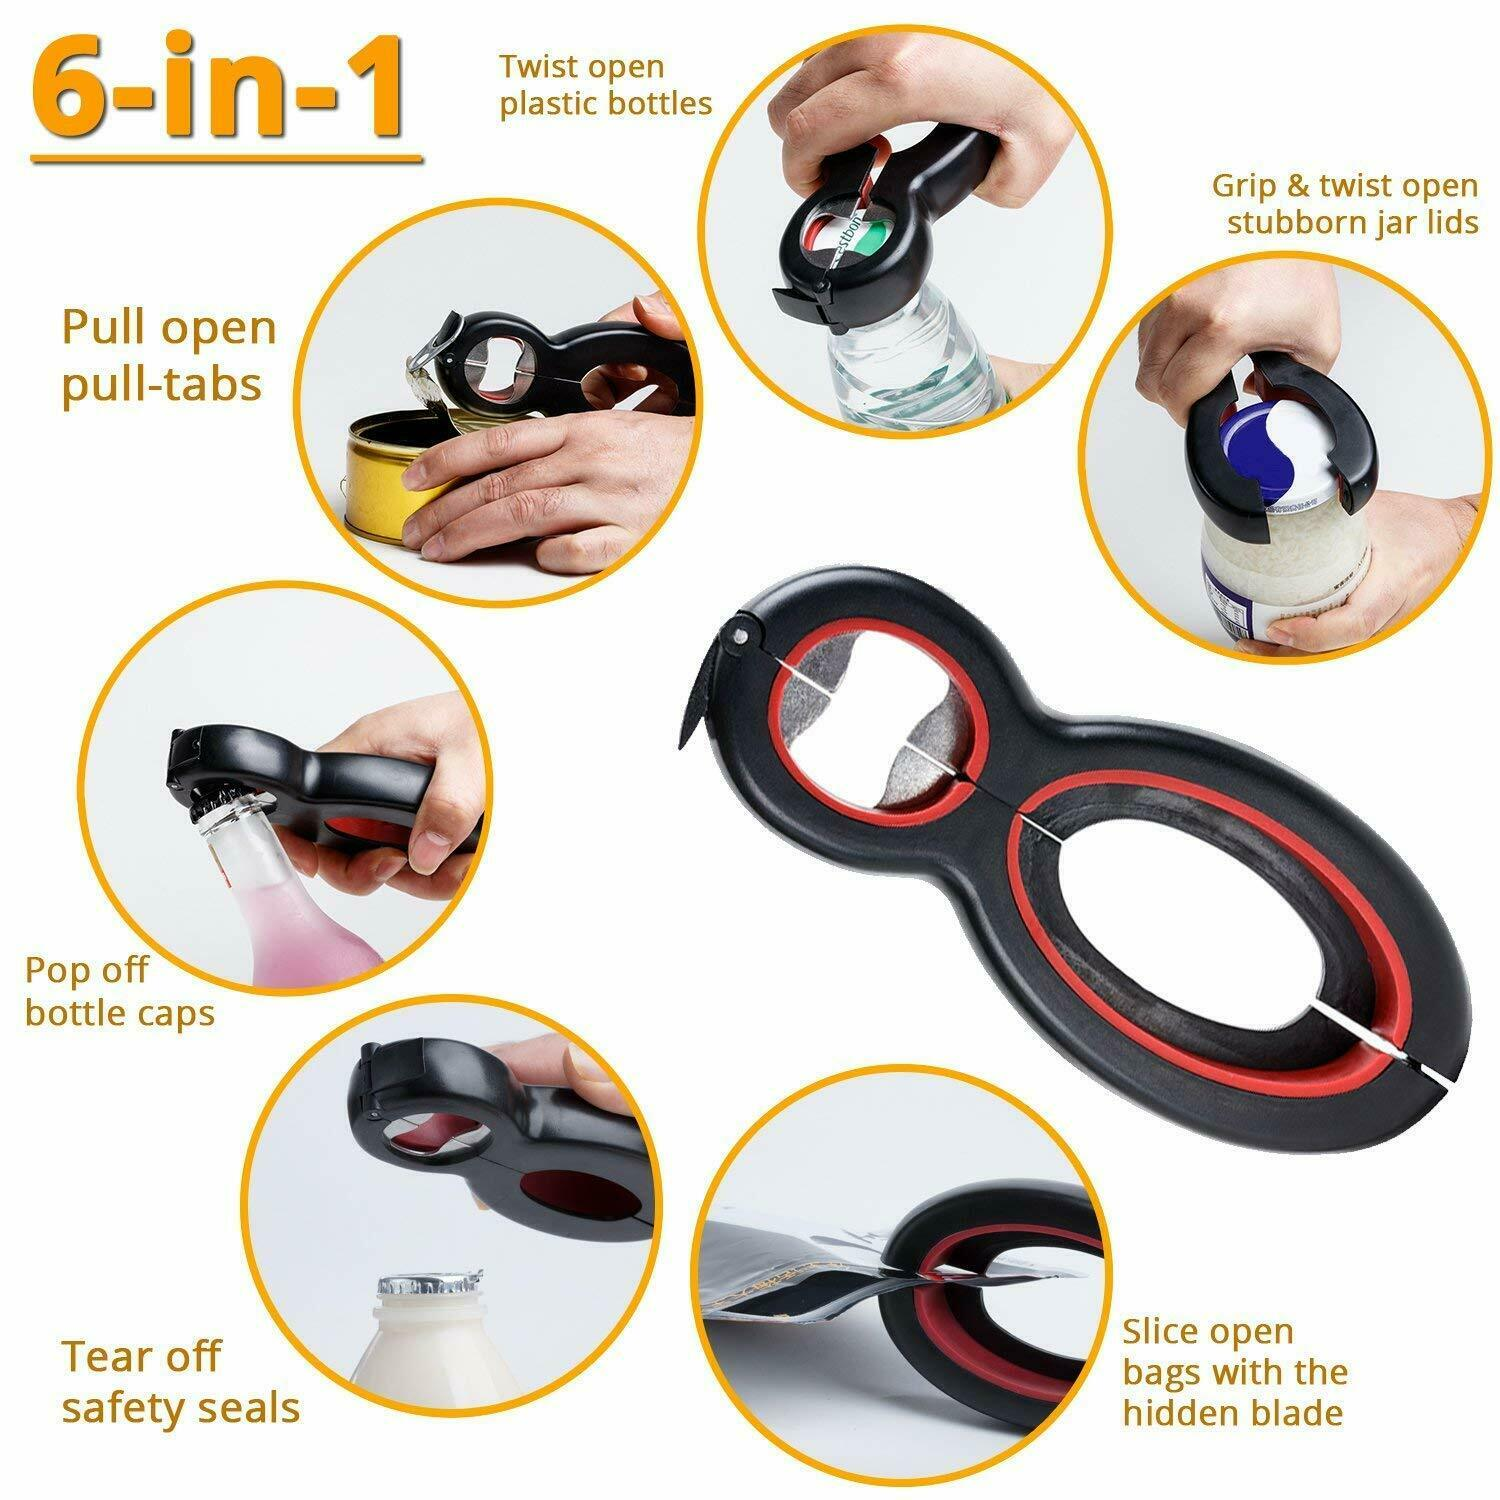 Multifunction Bottle Can Jar Tin Grip Opener,6-in-1 Stainless Steel Portable Beer Wine Bottle Openers,Lid Seal Remover Twist Off,Kitchen Tool for Children Seniors or Arthritic Hands